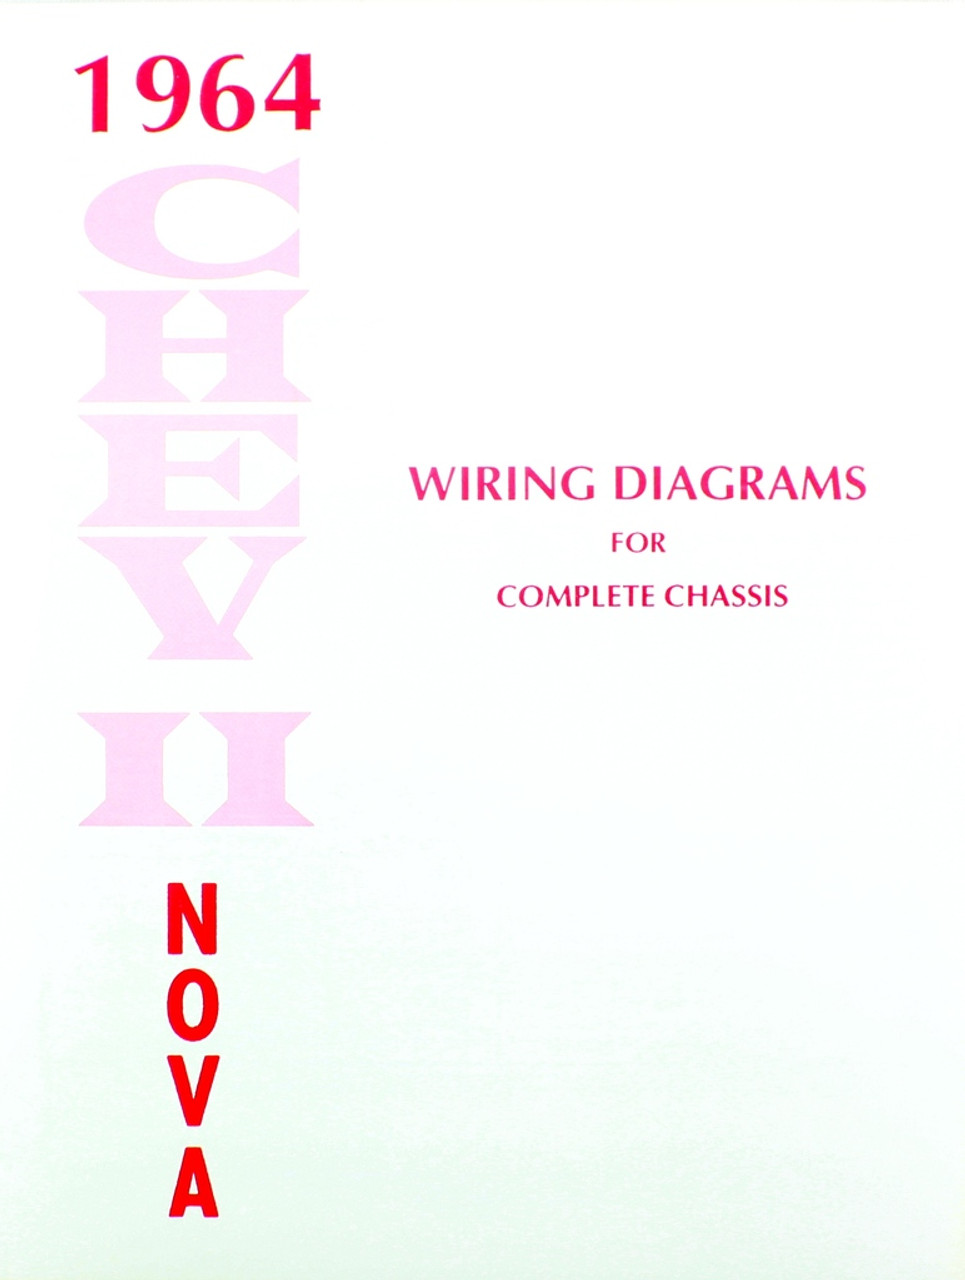 64 1964 Chevy Nova Electrical Wiring Diagram Manual I 5 Classic El Camino